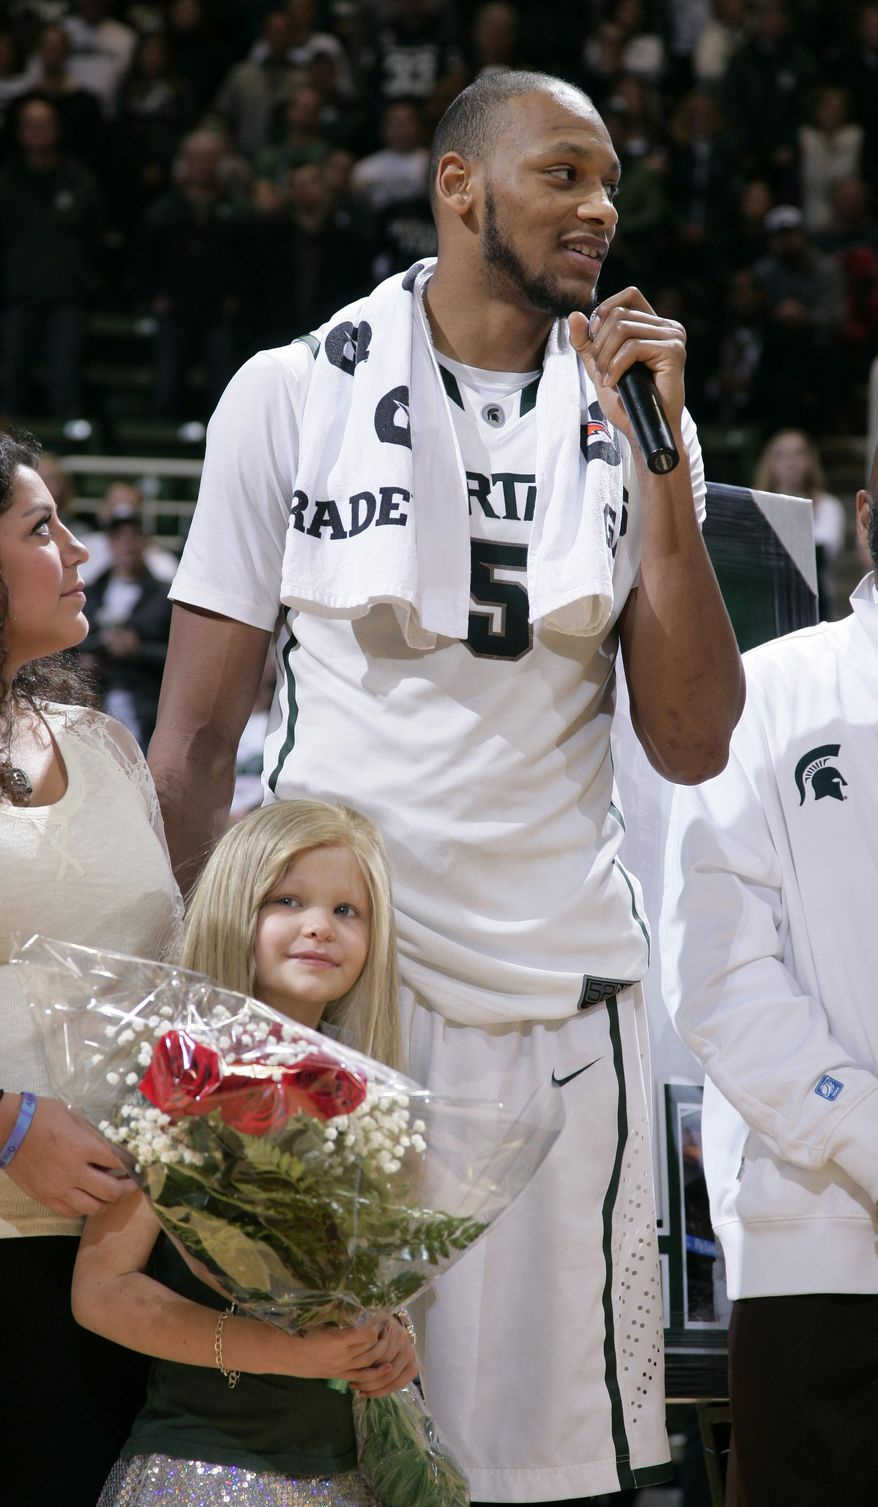 ** FILE ** In this March 6, 2014, file photo, Michigan State senior Adreian Payne addresses the crowd during a senior day ceremony as he stands with his guest, Lacey Holsworth, who is battling cancer, following an NCAA college basketball game against Iowa, in East Lansing, Mich. The father of  8-year-old Lacey Holsworth, who befriended Michigan State basketball star Adreian Payne says his daughter has died. (AP Photo/Al Goldis)